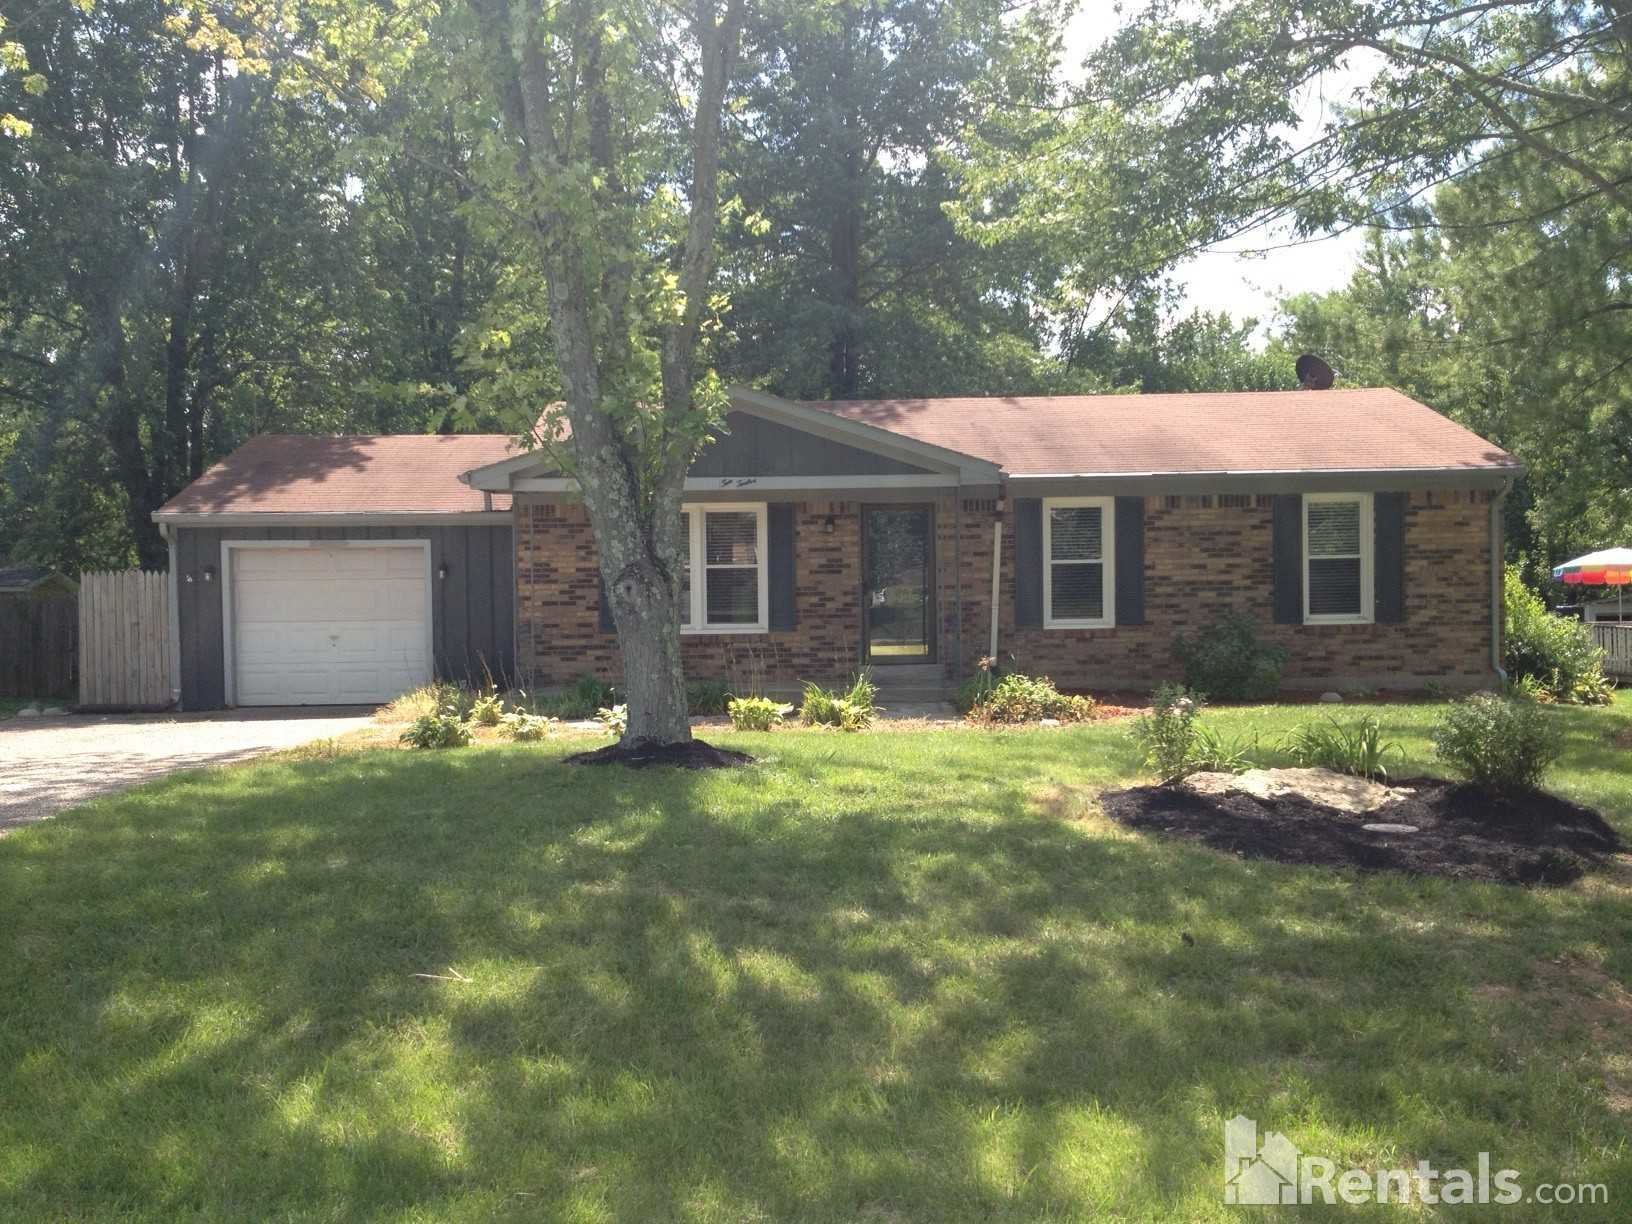 Best Kentucky Houses For Rent In Kentucky Homes For Rent Apartments Rental Properties Condos Ky With Pictures